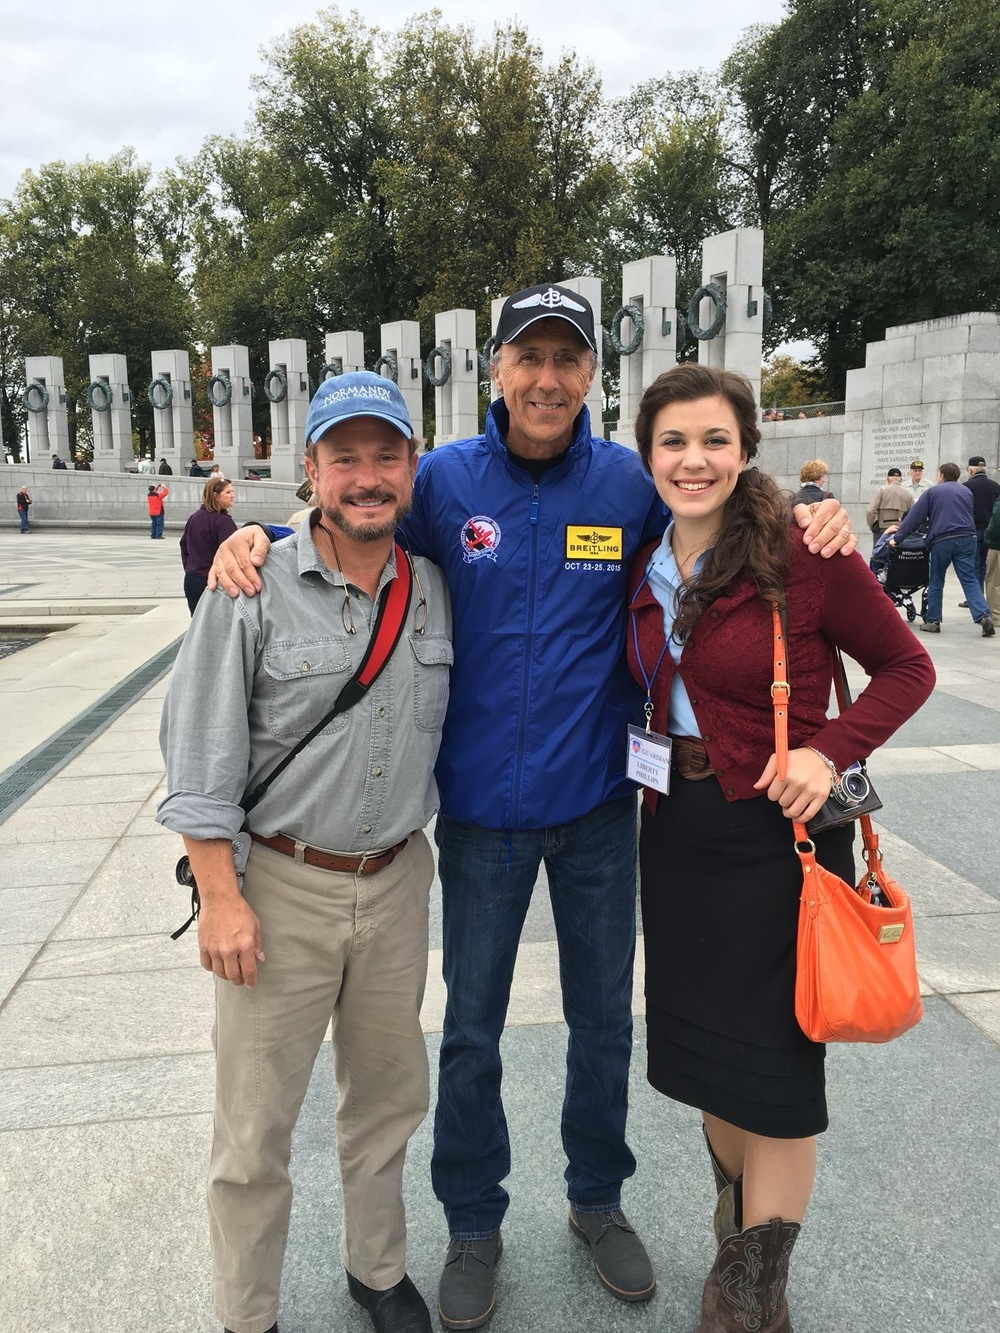 Liberty with Mr. Jeff Miller, cofounder of the Honor Flight program